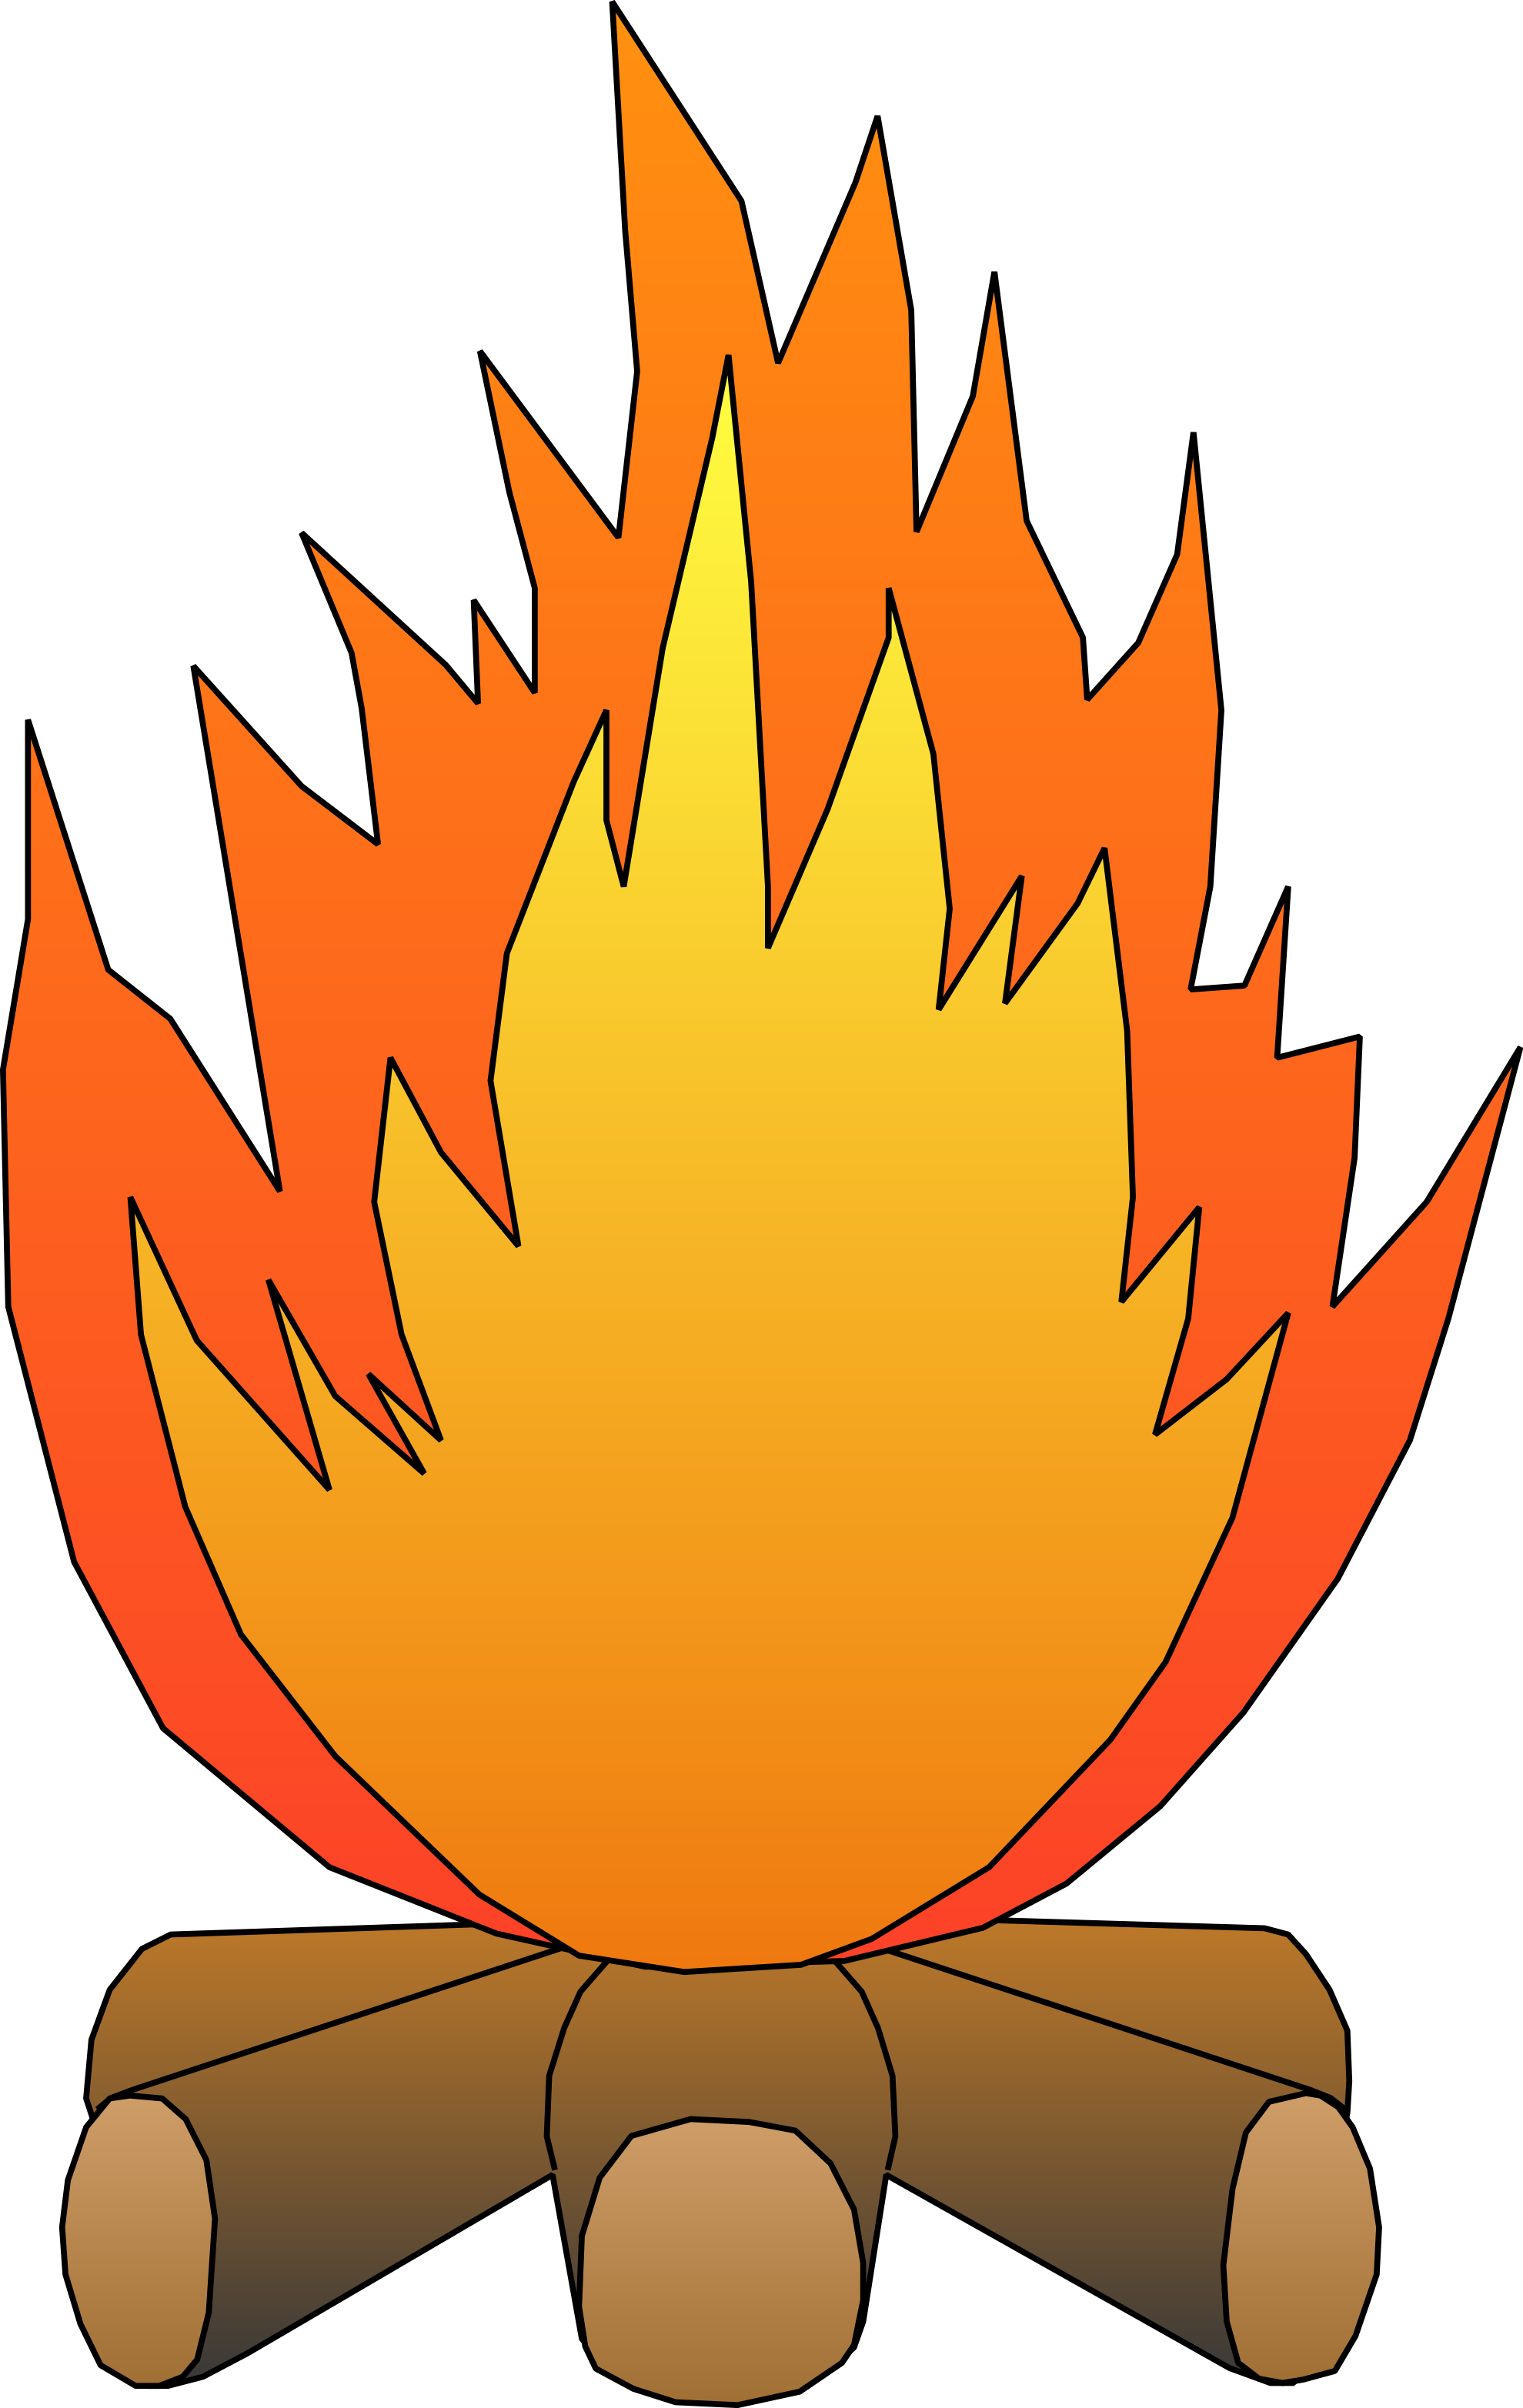 Free picture of a. Campfire clipart freeuse stock